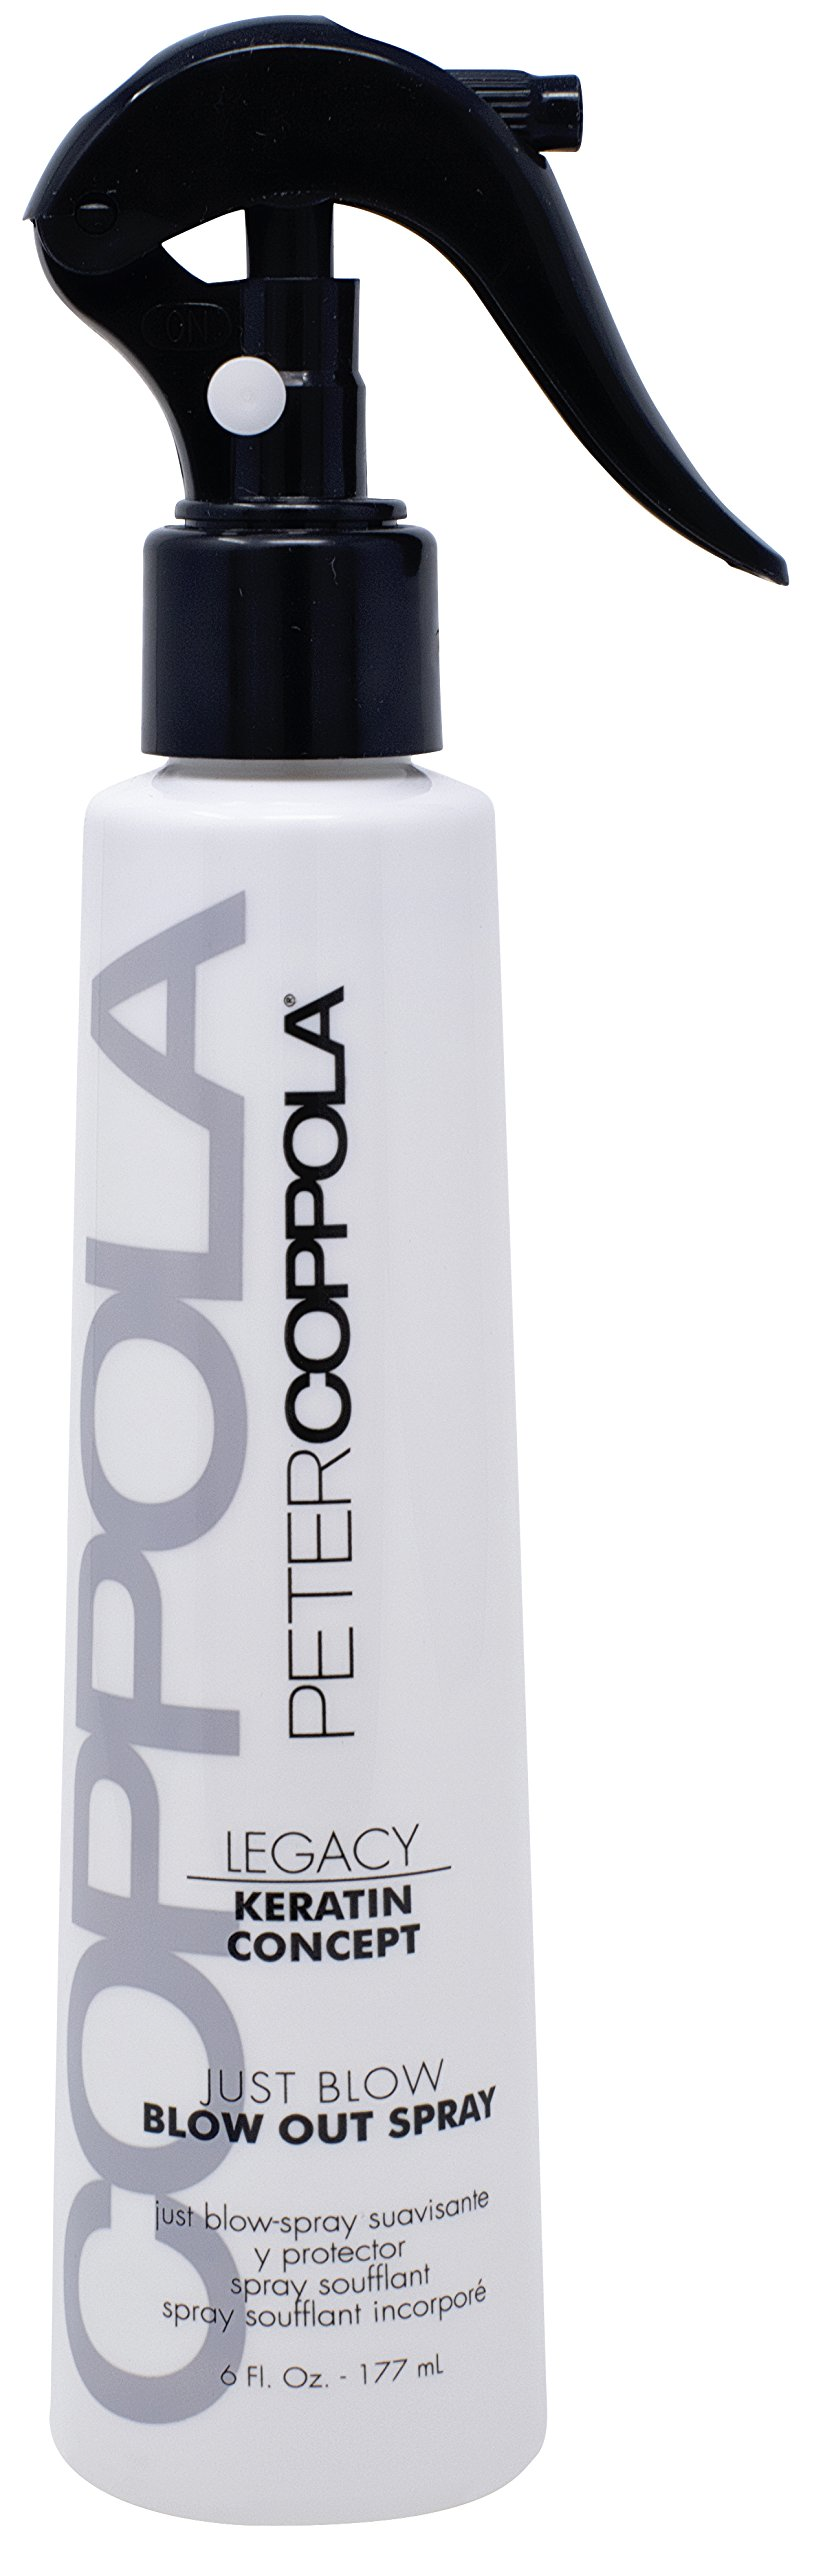 Peter Coppola Just Blow Blowout Spray - (6oz) Reduces Blow Dry Time, Heat Protectant Spray, Anti Frizz, Smoothes and Straightens all Hair Types. Conditions and Adds Shine